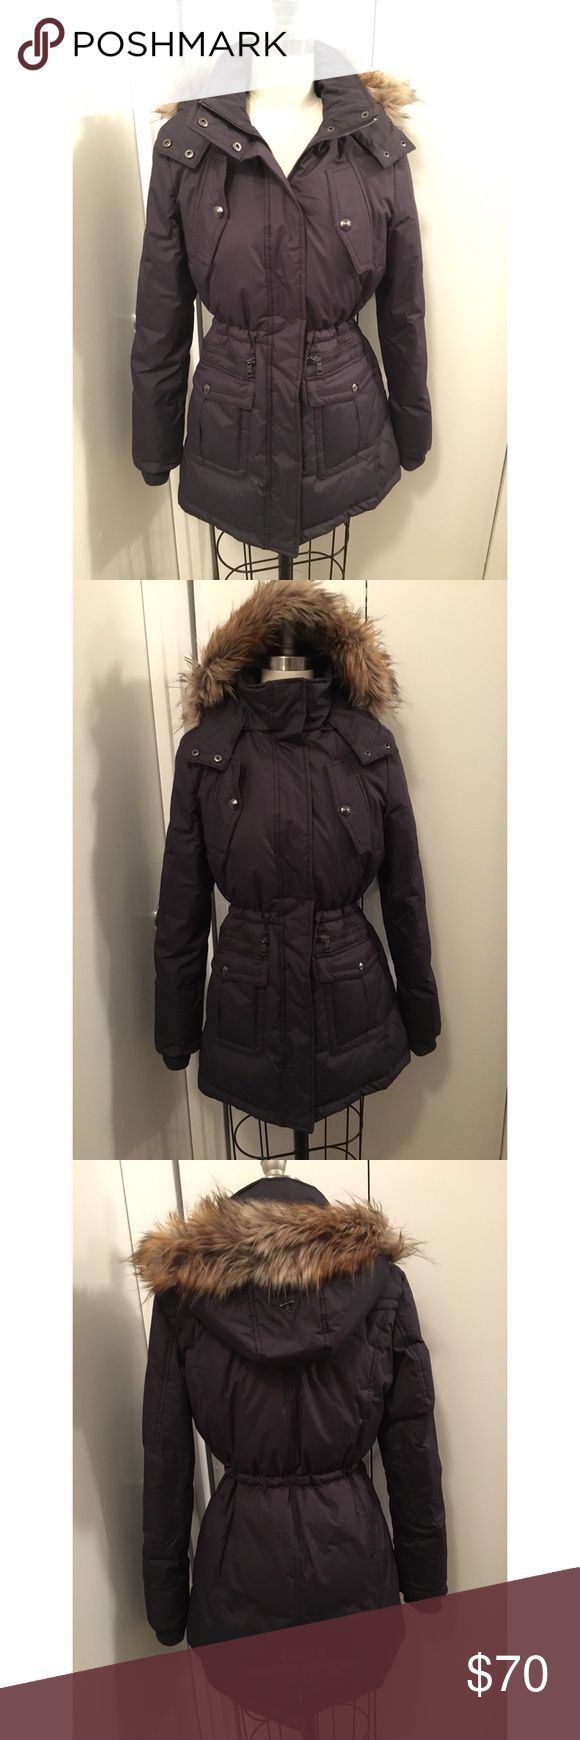 Sam Edelman Navy Puffer Parka Anorak Coat Jacket This Sam Edelman Parka anorak is Navy and in a size small. It fits like a small or slightly fitted medium. It's very flattering with the option to cinch the waist. It has 4 pockets, a zip off hood, and knit cuffs for extra warmth. It's been worn 2x at most and is in perfect condition. No trades. Thanks for stopping by! 🙋 Sam Edelman Jackets & Coats Puffers